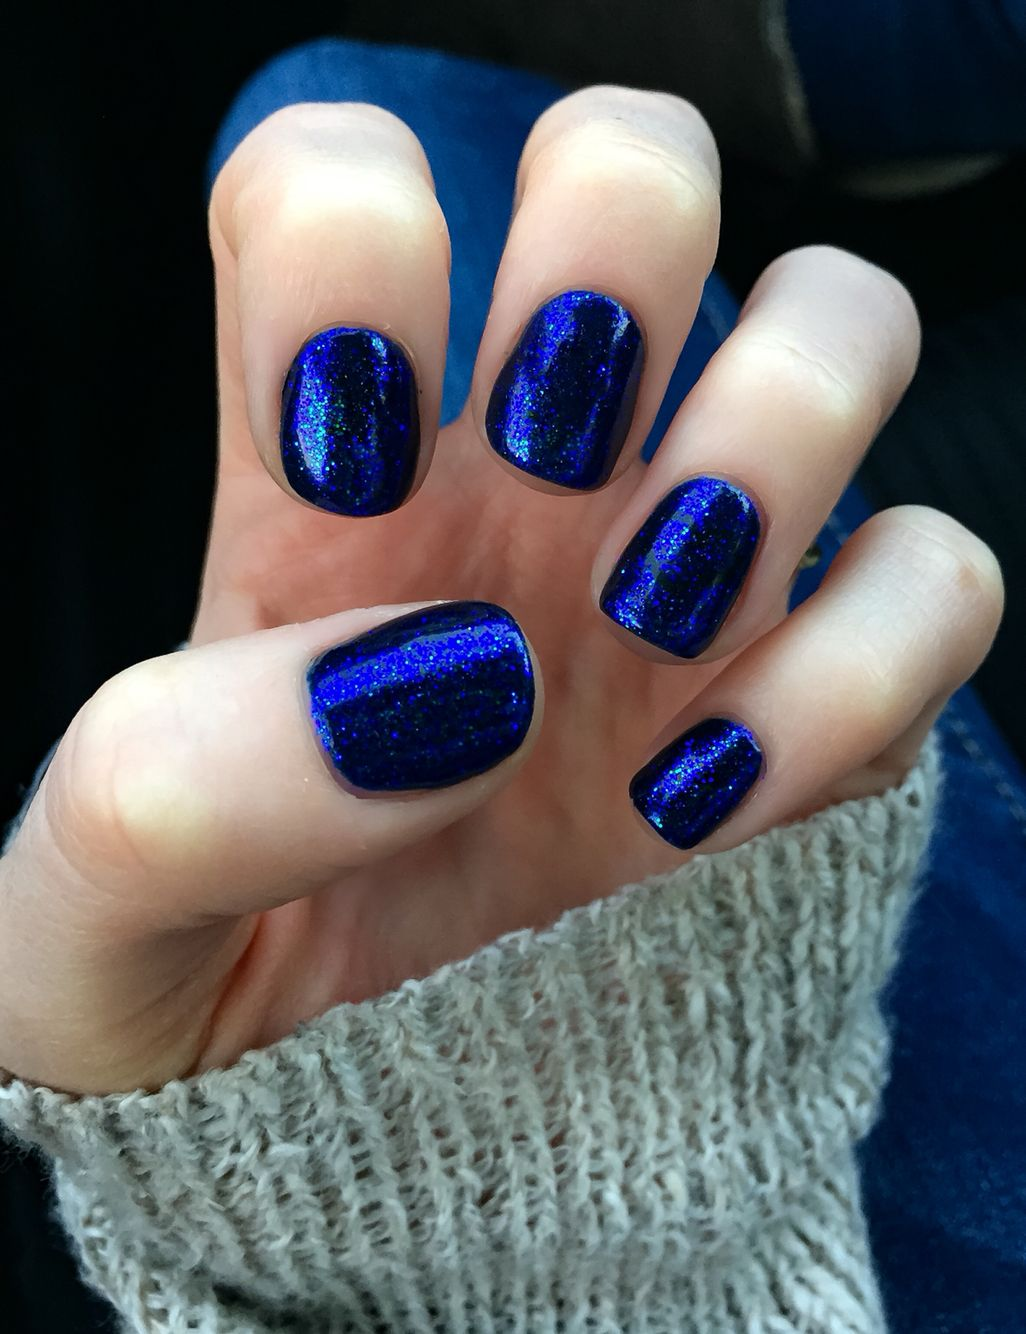 Midnight Swim CND Shellac With CND Additive In Periwinkle